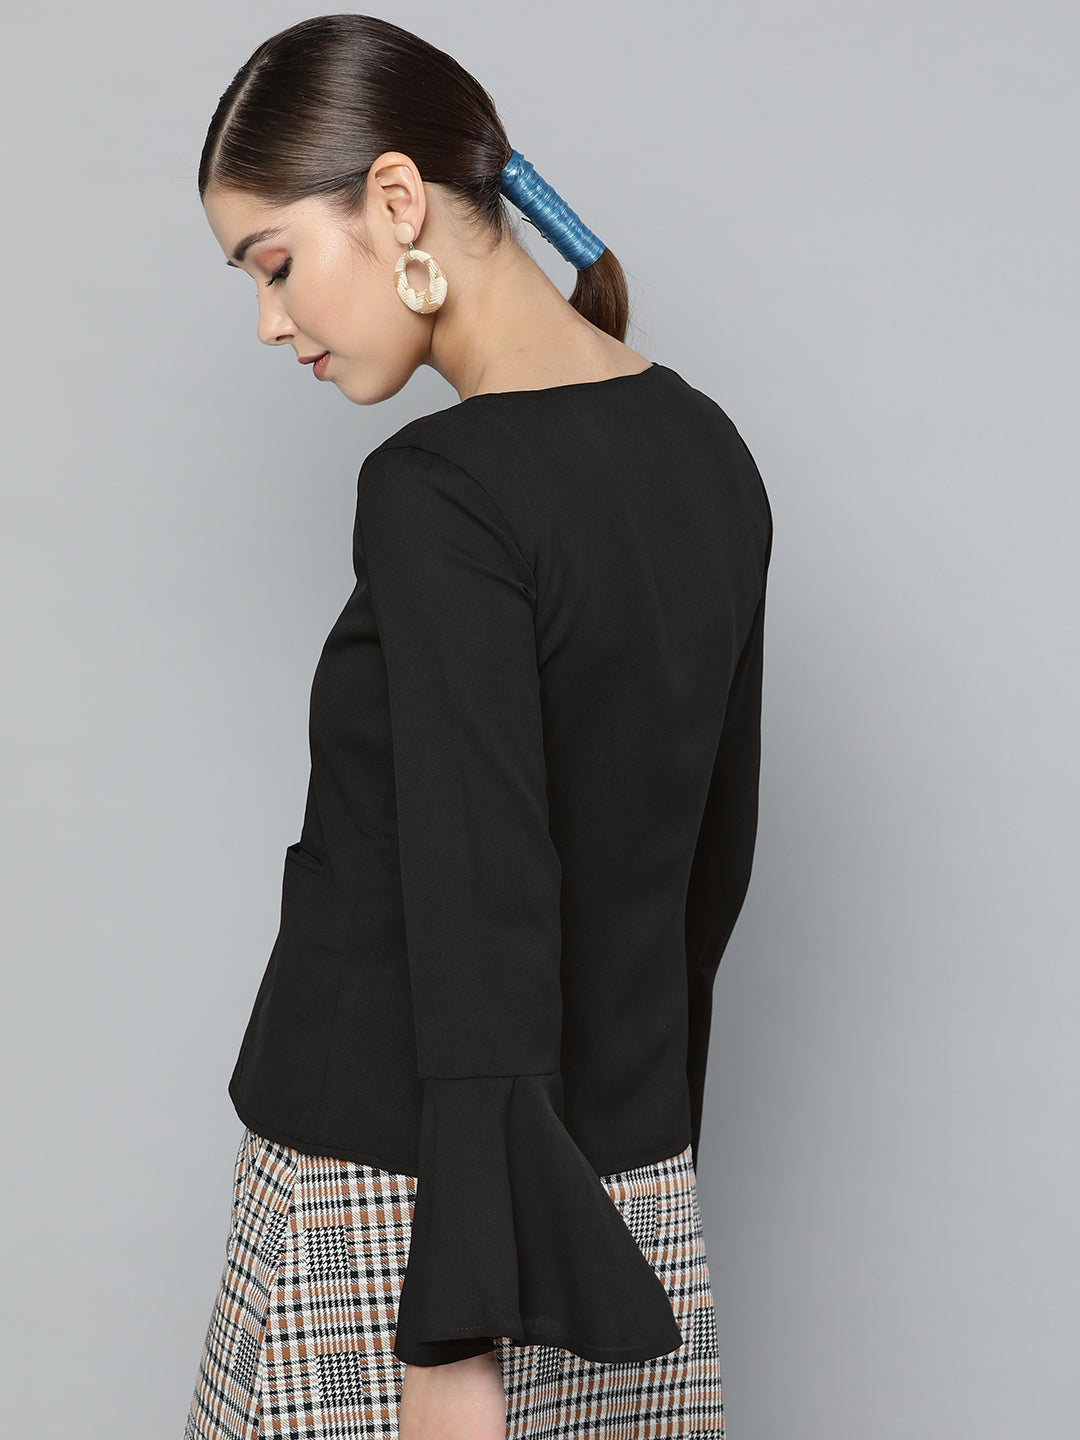 Bell Sleeves Solid Black Jacket